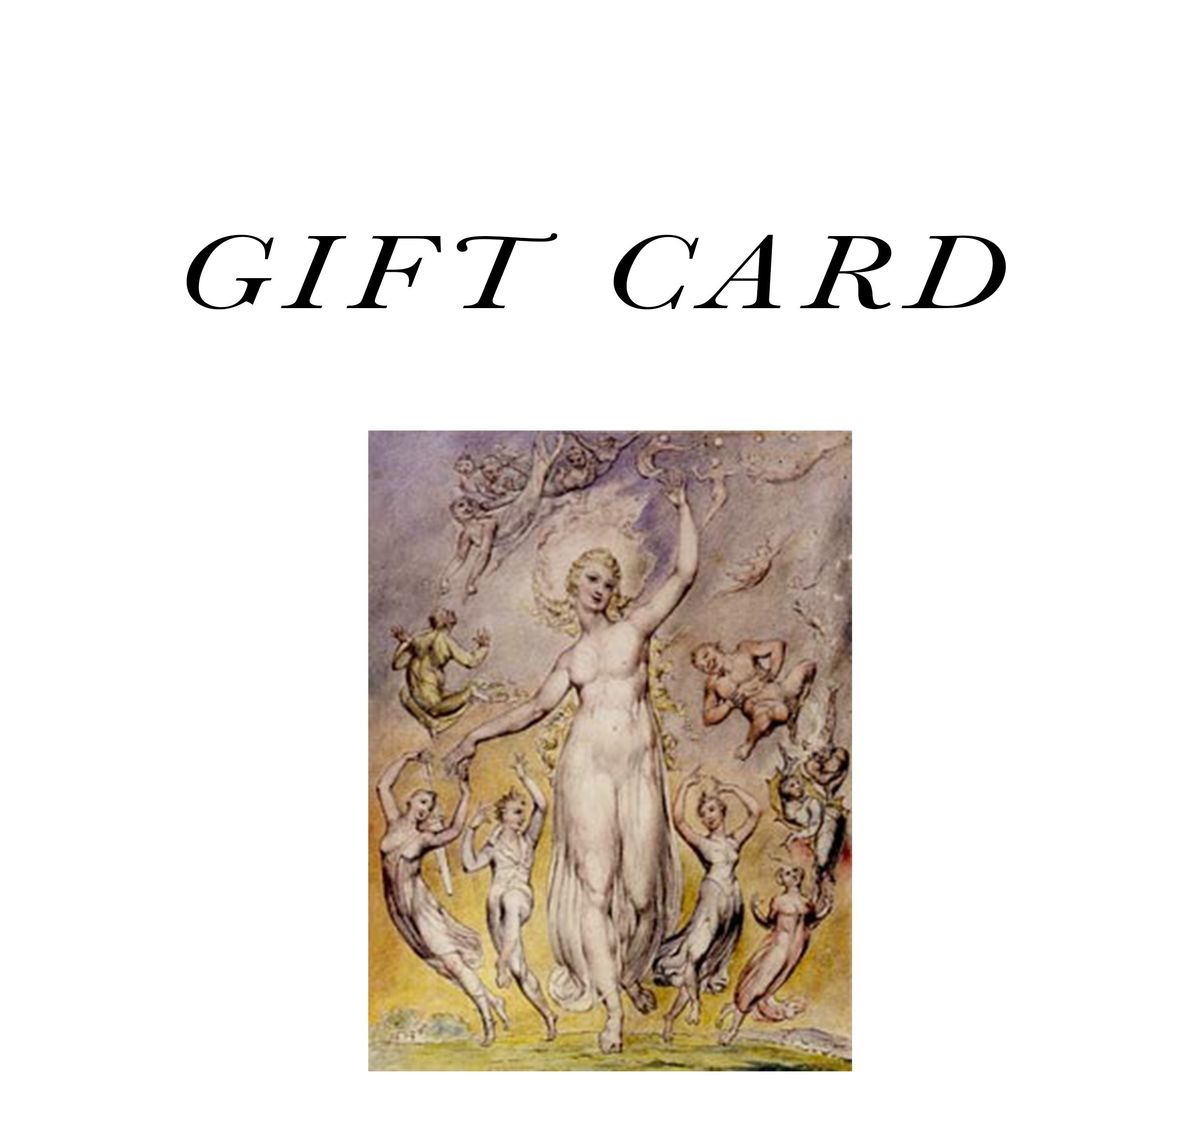 Gift card - product image